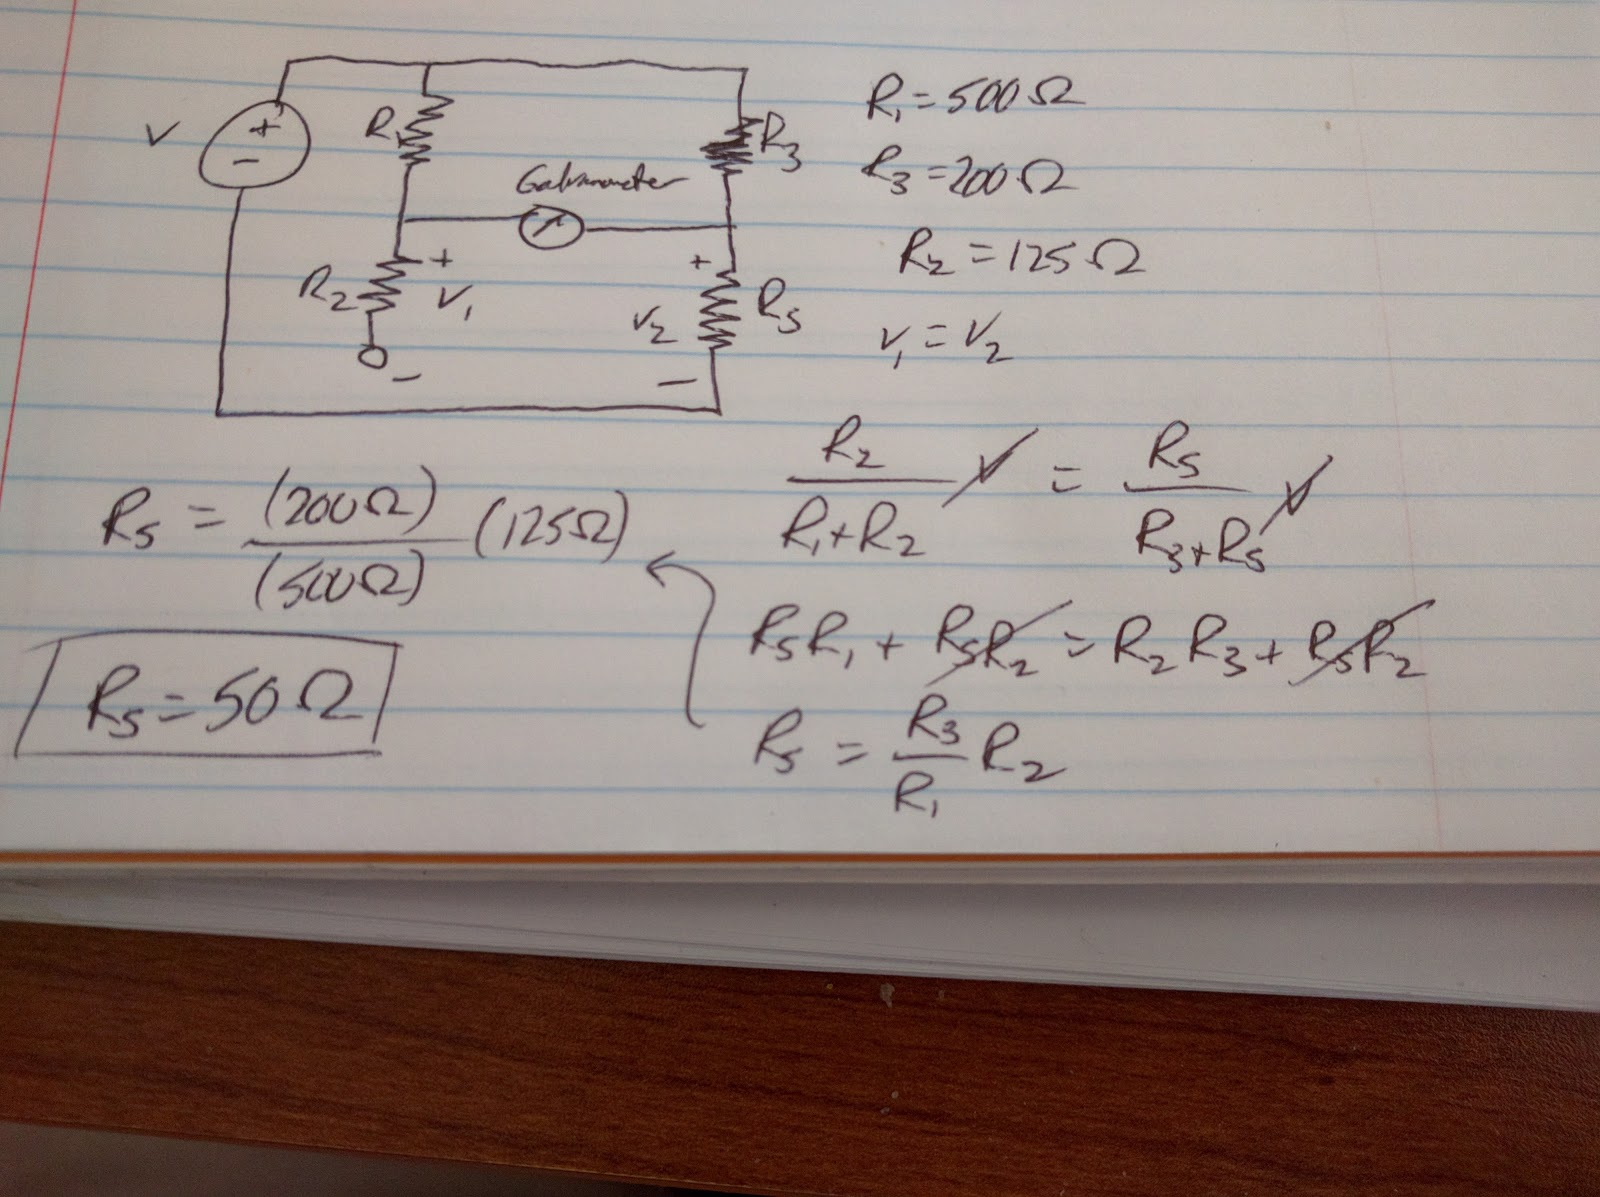 Engineering 44 Hynassman Day 9 Maximum Power Transfer Theorem And Of An Electrical Circuit Showing The Wheatstone Bridge In This Problem Resistance Needed For R S So That No Current Goes Through Galvanometer Was Found 50 Ohms